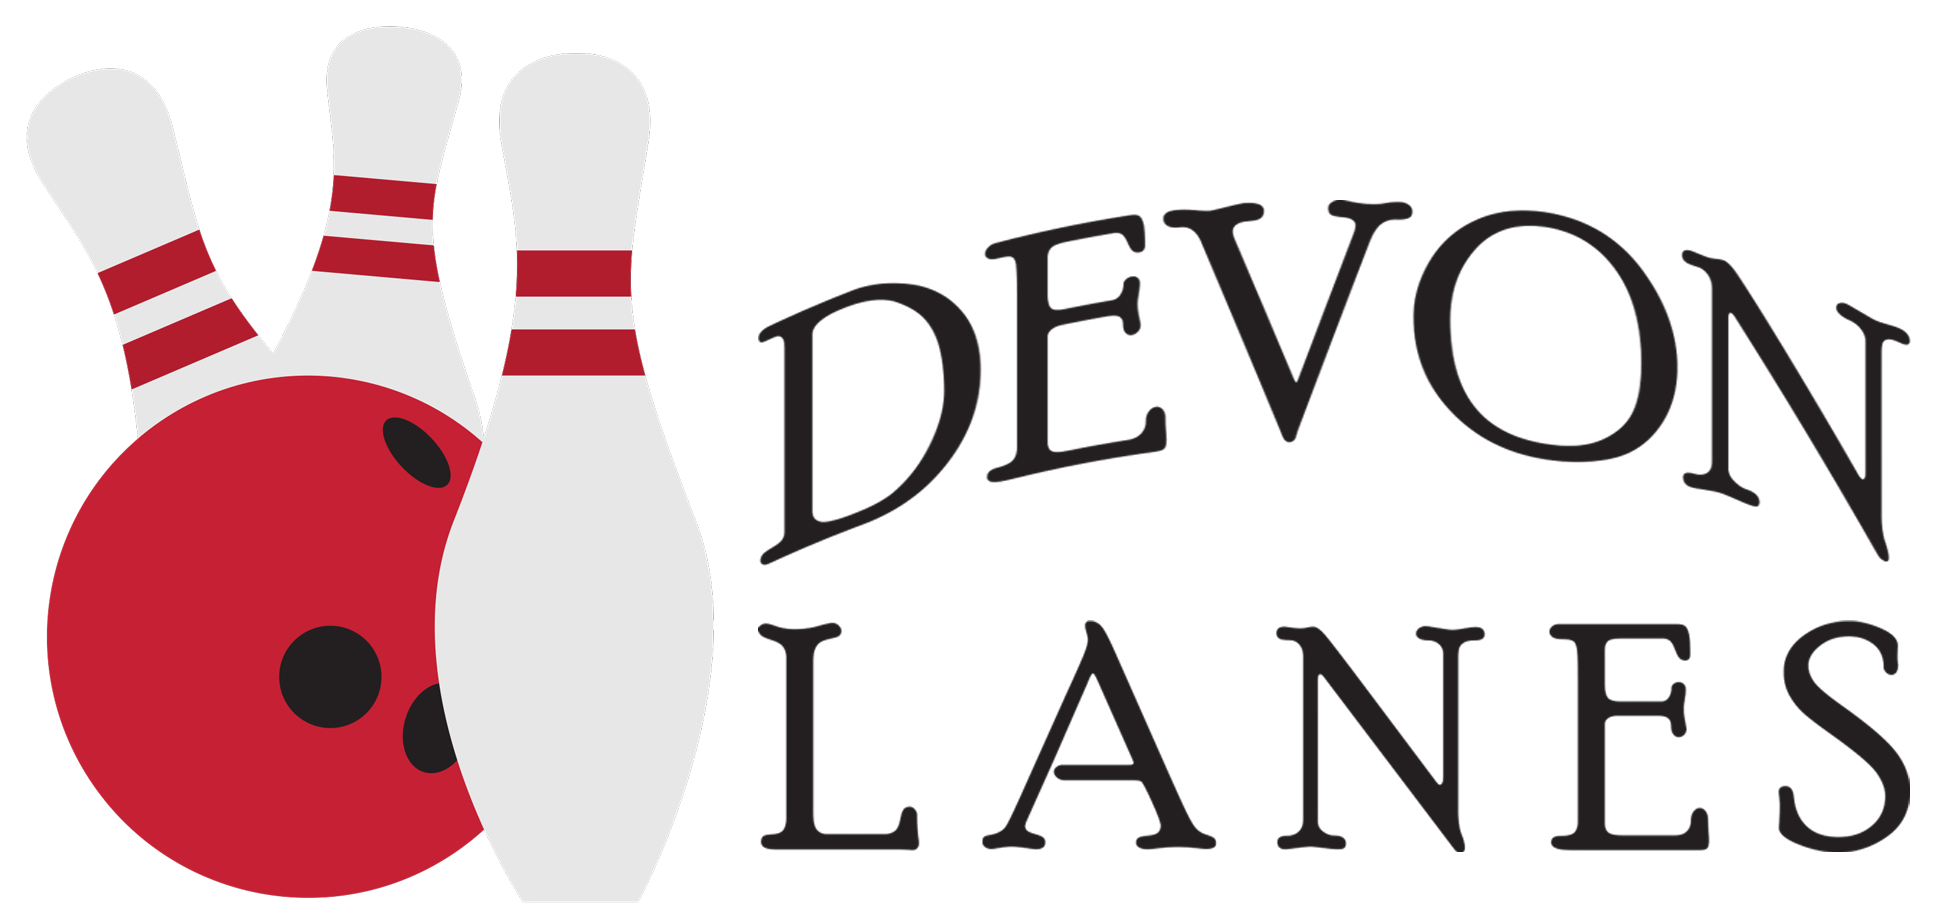 svg transparent library Family fun devon lanes. Buildings clipart bowling alley